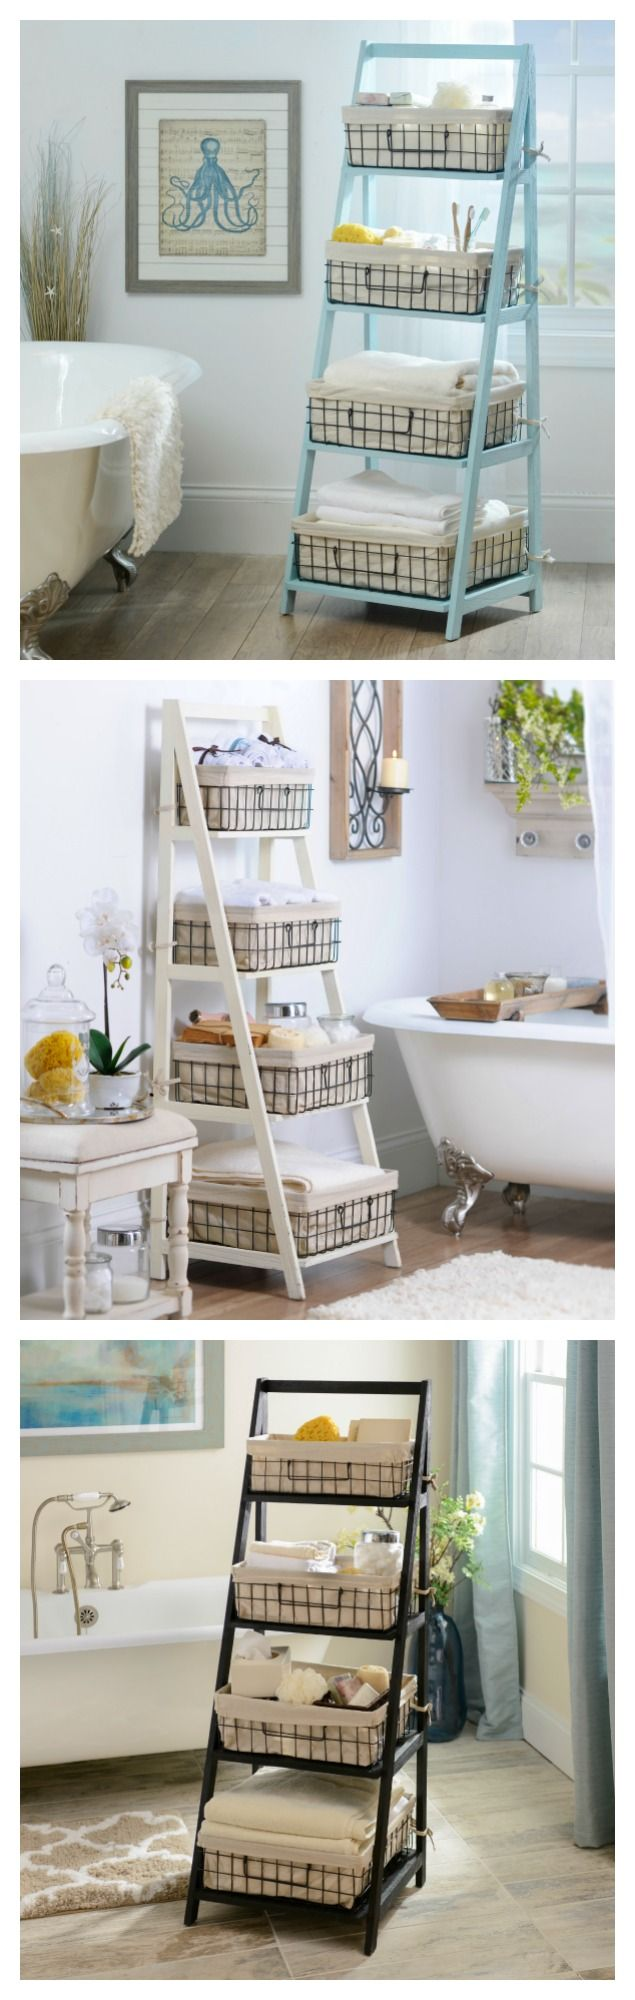 Best 25 Organize Towels Ideas On Pinterest  Bathroom Storage Beauteous Storage For Towels In Small Bathroom Inspiration